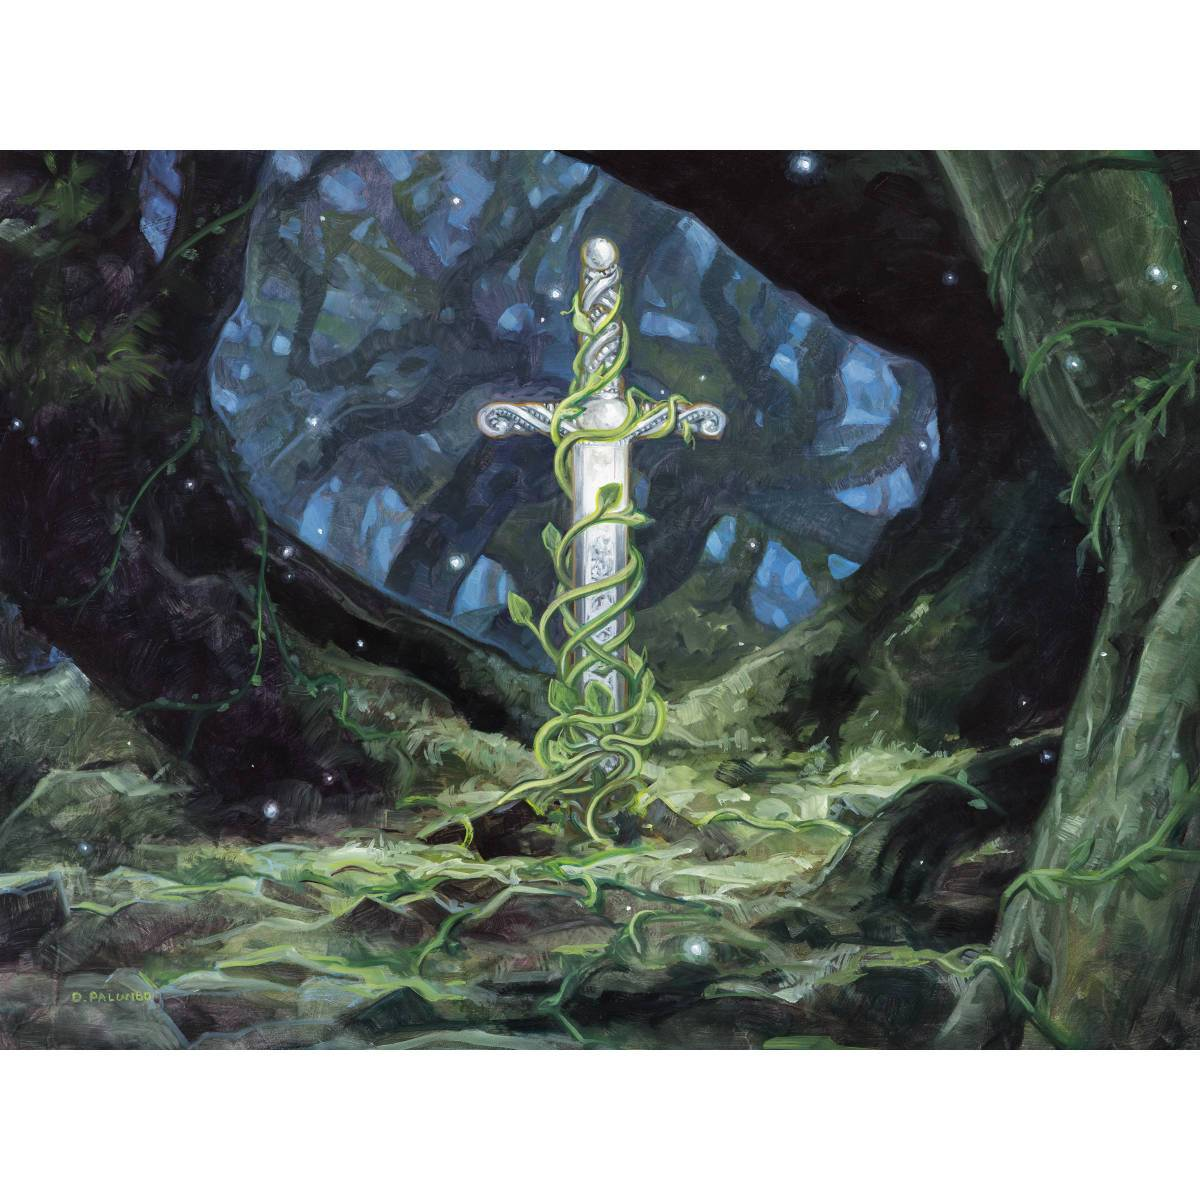 Gaea's Blessing Print - Print - Original Magic Art - Accessories for Magic the Gathering and other card games